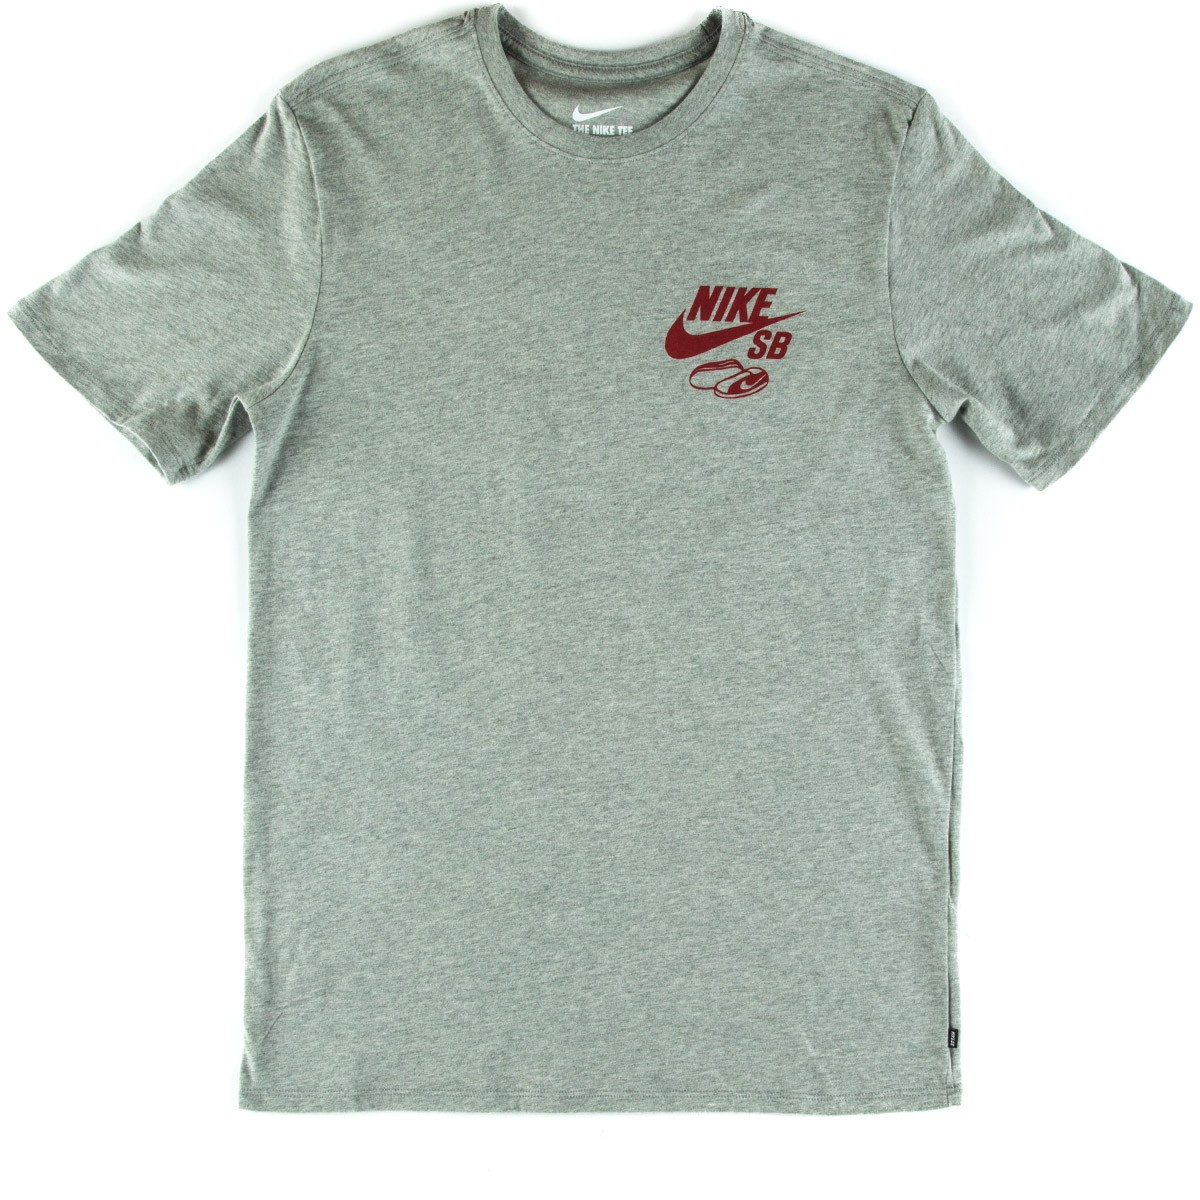 1628895d nike-sb-geoff-mcfetridge-1-t-shirt-dark-grey-heather-red-1.1506714443.jpg